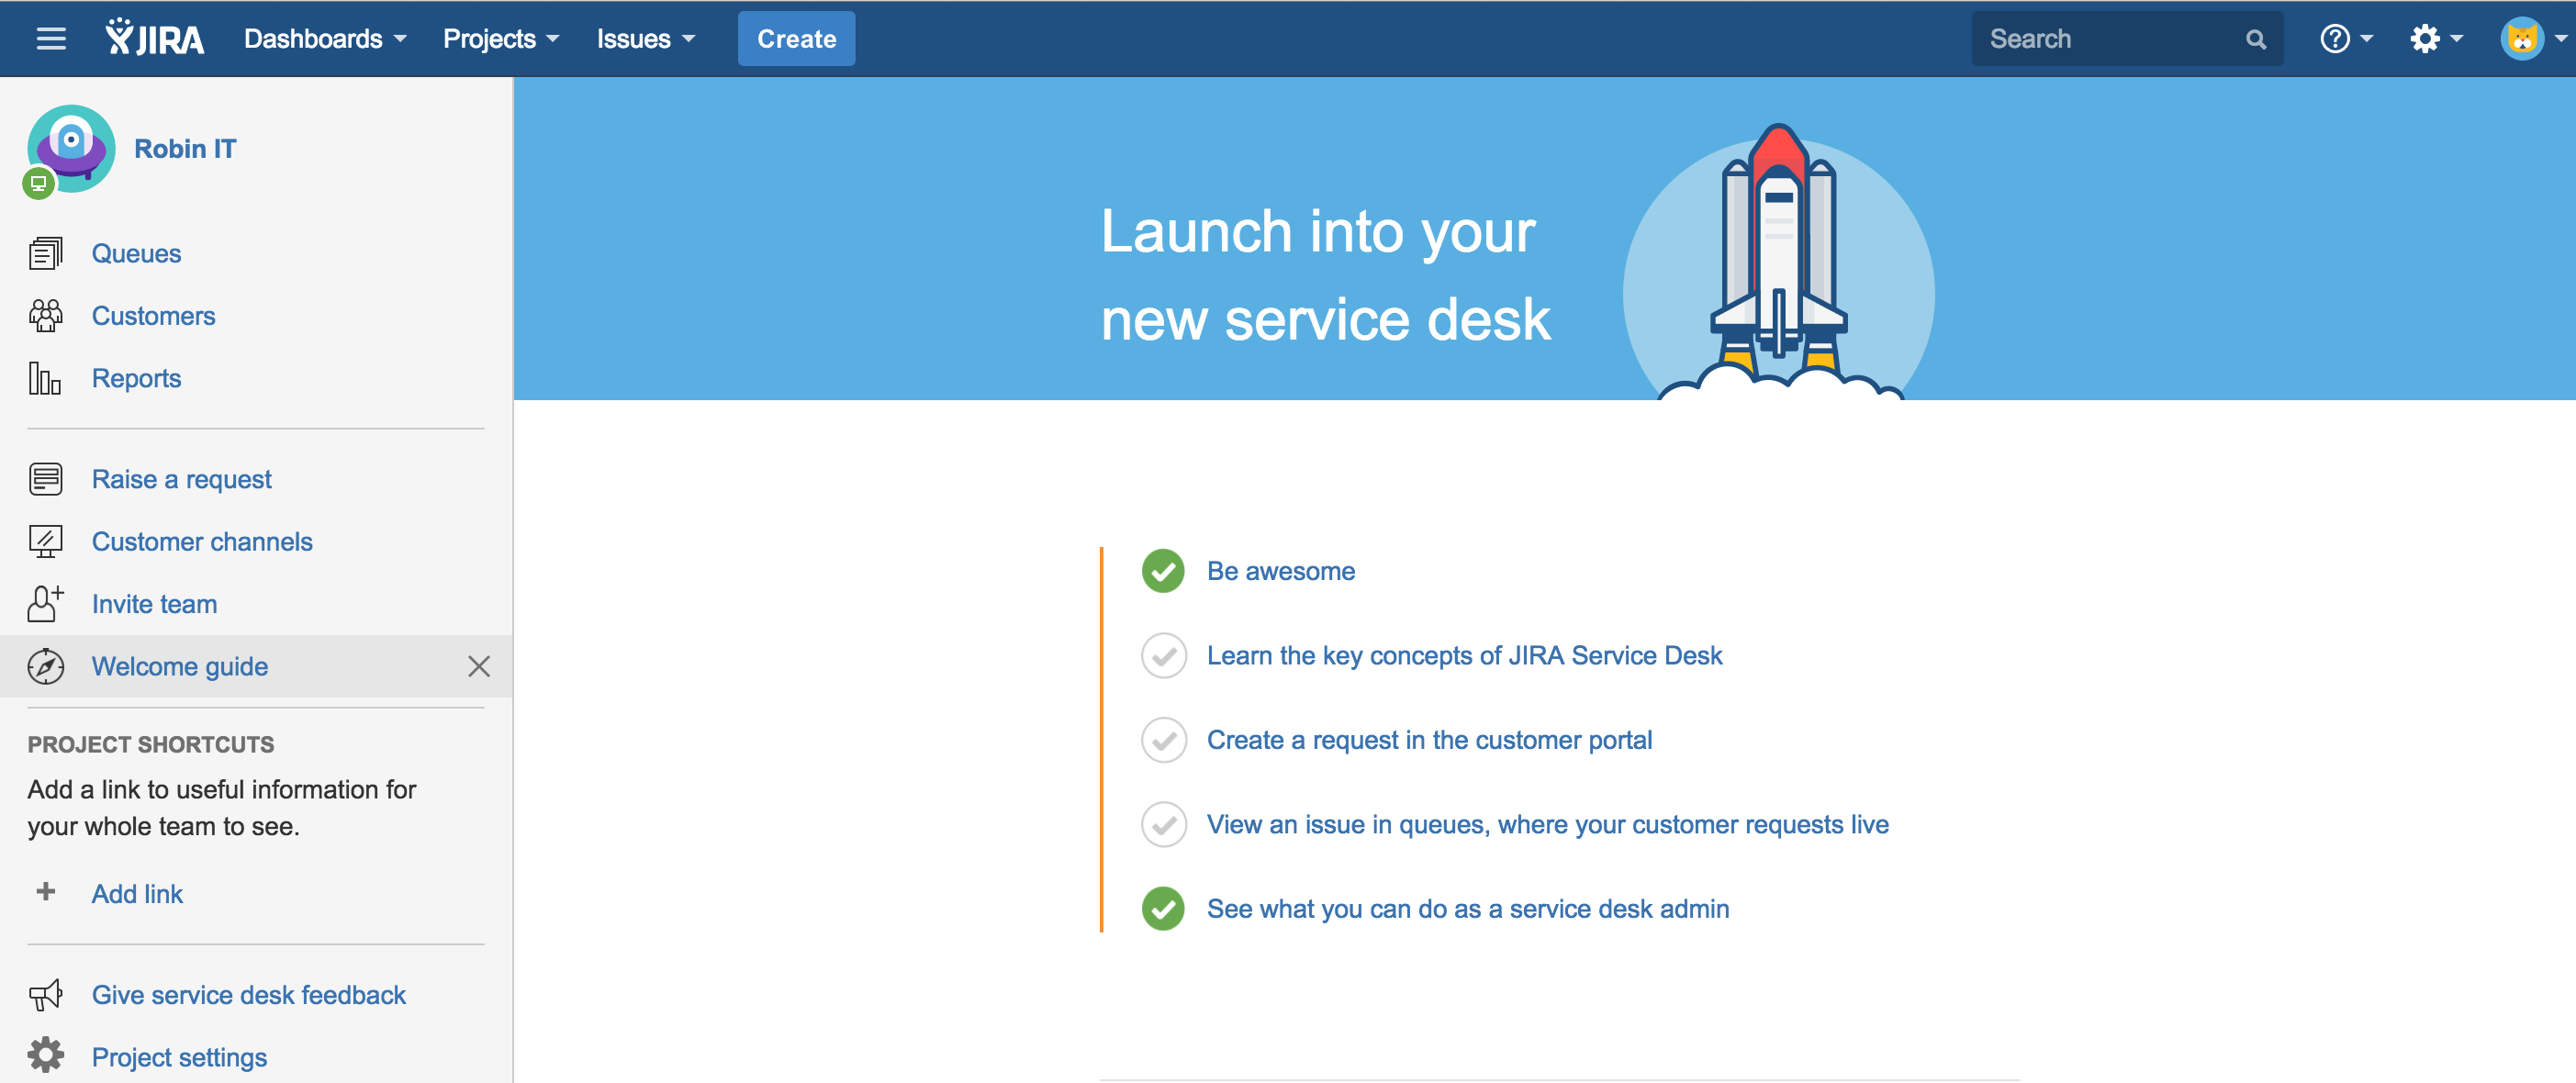 Best practices for IT teams using Jira Service Desk